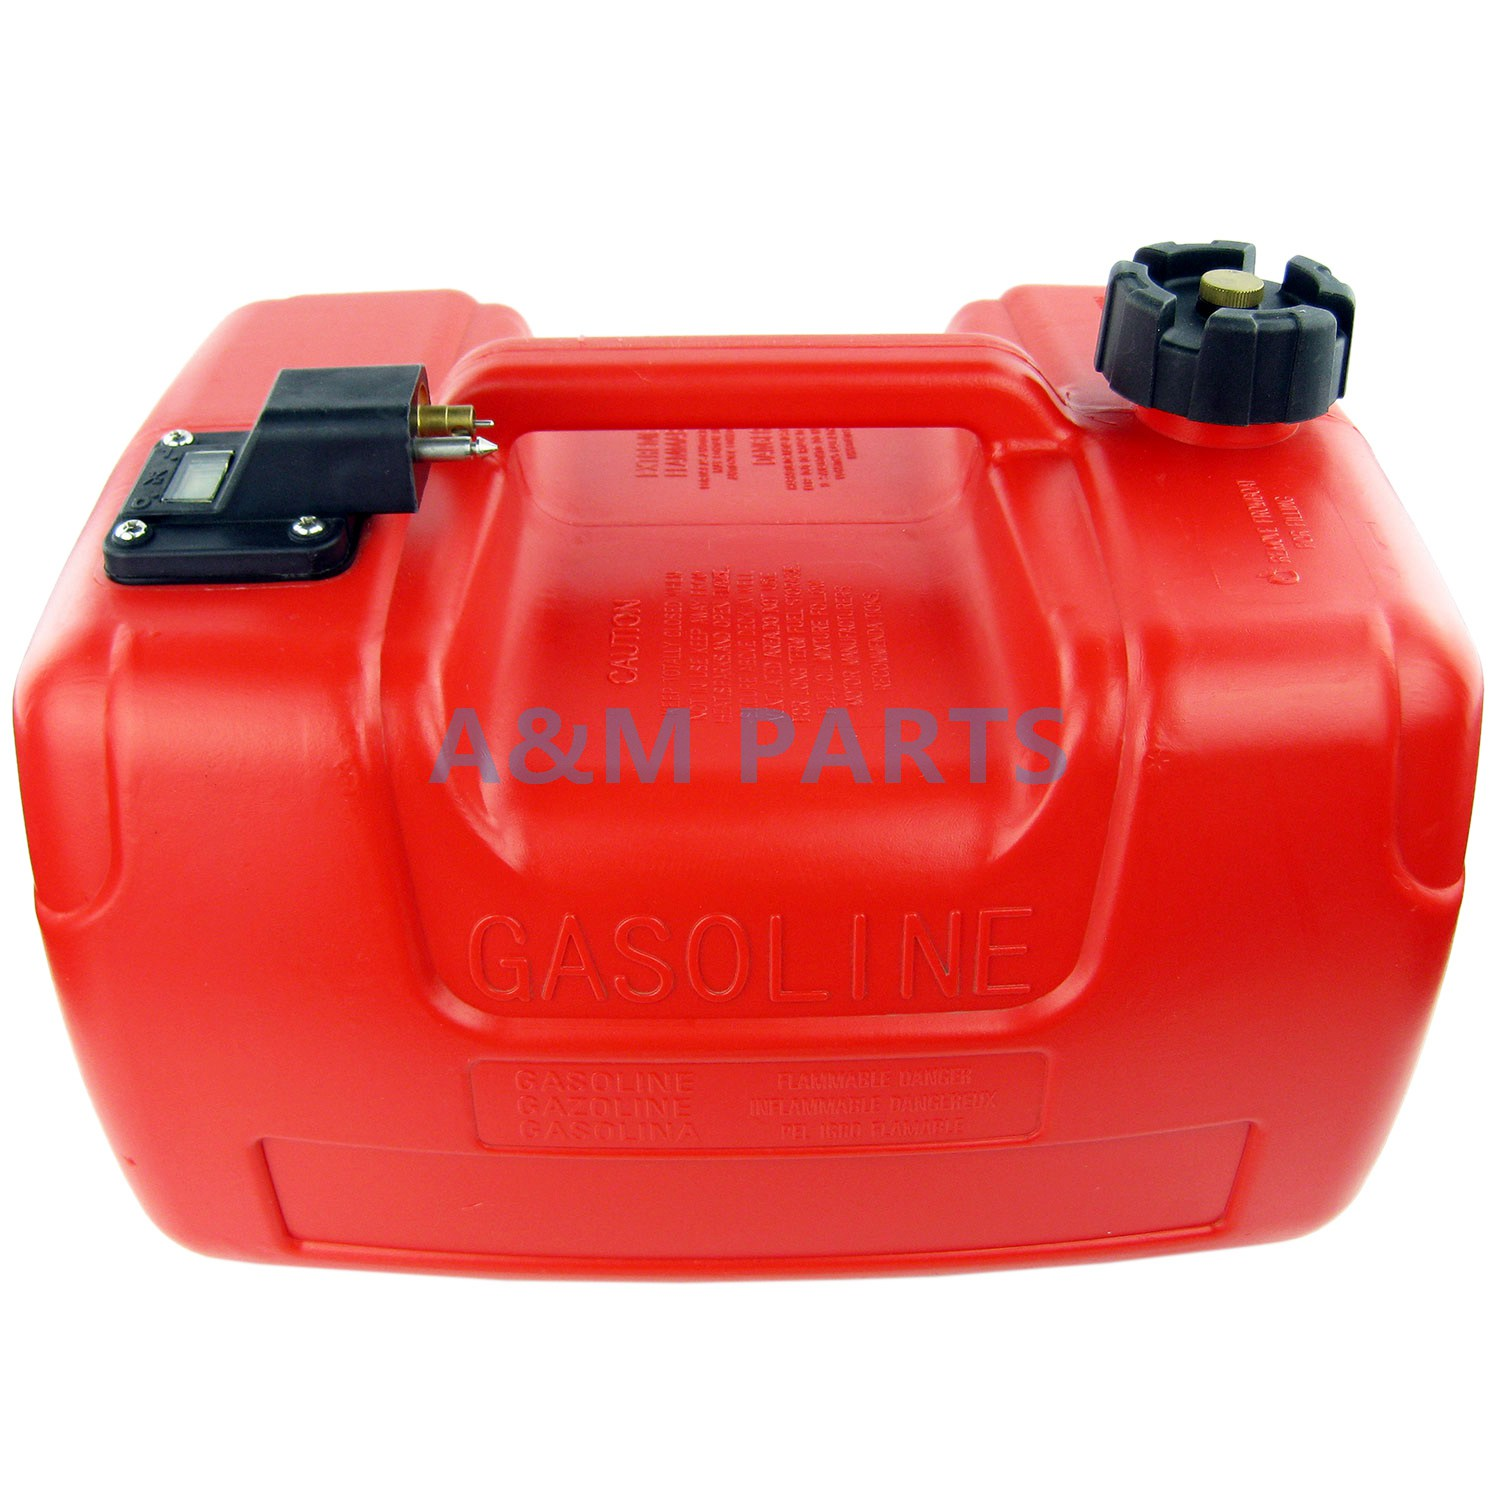 US $52 36 24% OFF|Portable Boat Fuel Tank 3 2 Gallon 12L Marine Outboard  Fuel Tank With Fuel Hose Connector Fuel Gauge-in Fuel Tanks from  Automobiles